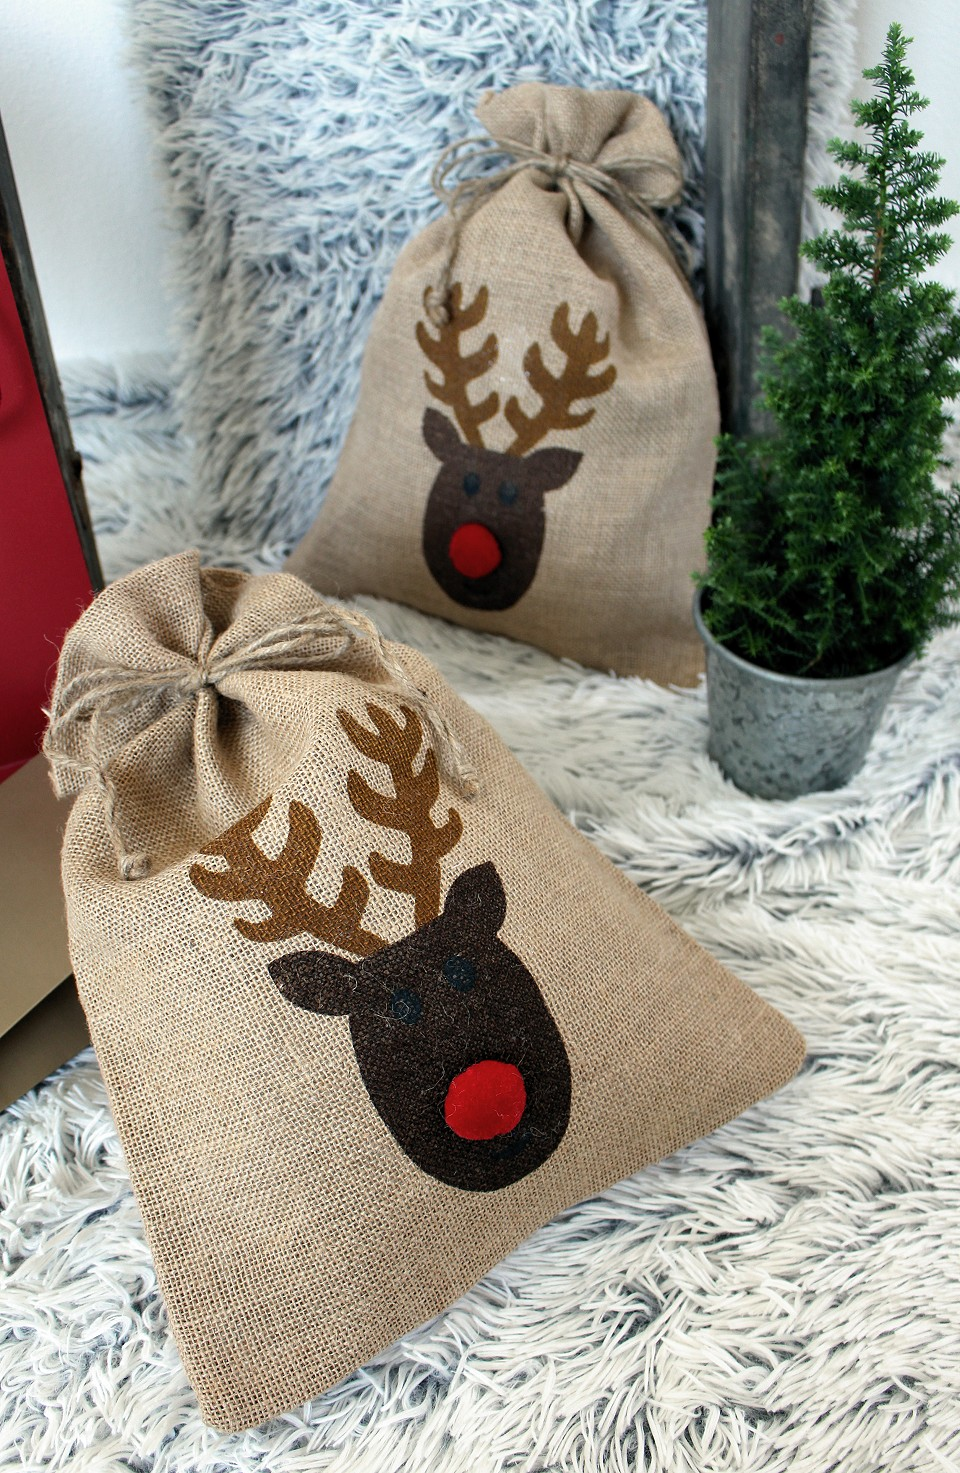 jutes ckchen weihnachten nikolaus 30x40 cm stoklasa. Black Bedroom Furniture Sets. Home Design Ideas